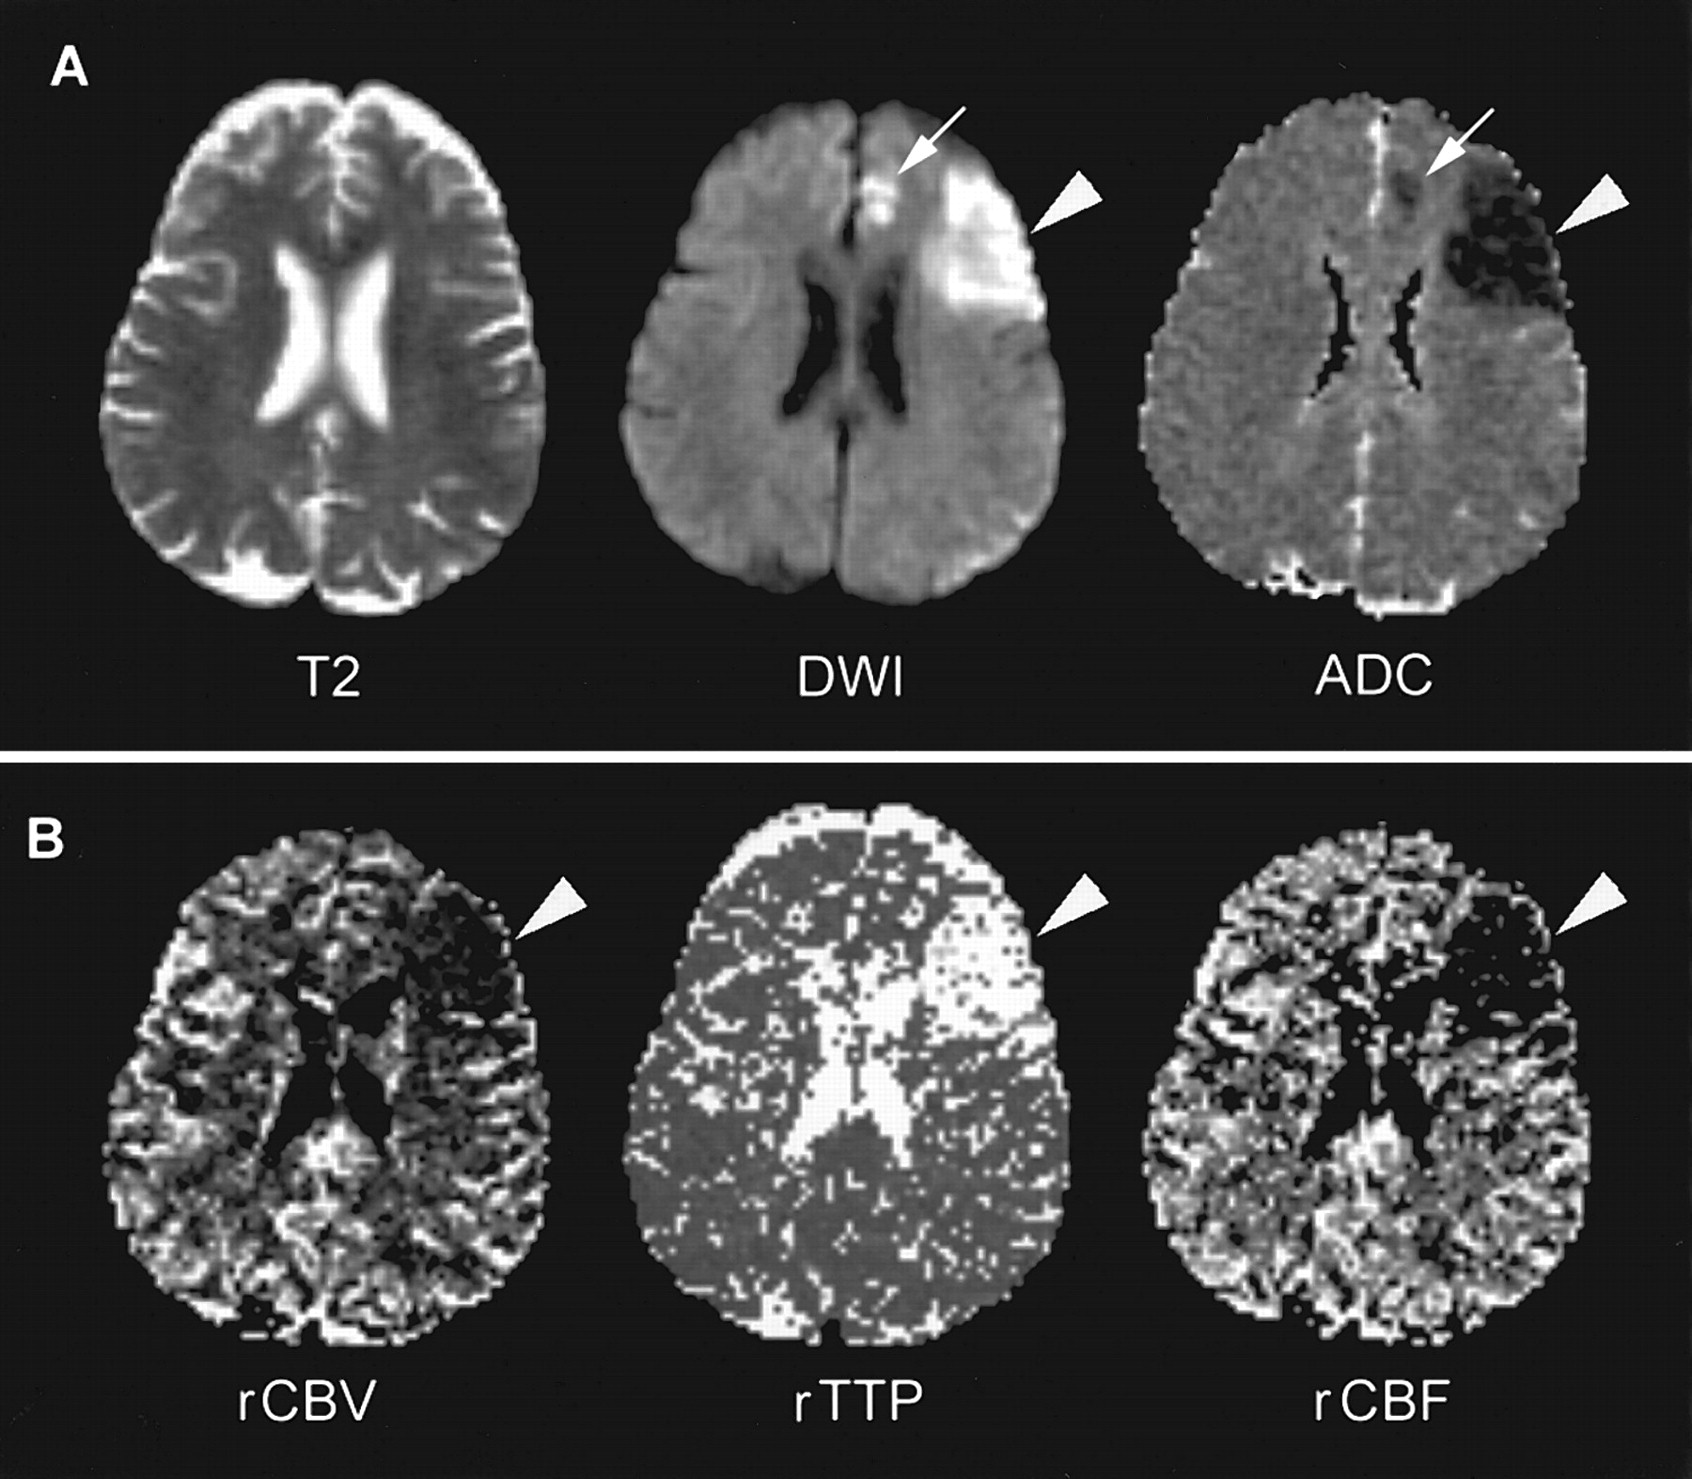 Intra-Arterial rtPA Treatment of Stroke Assessed by